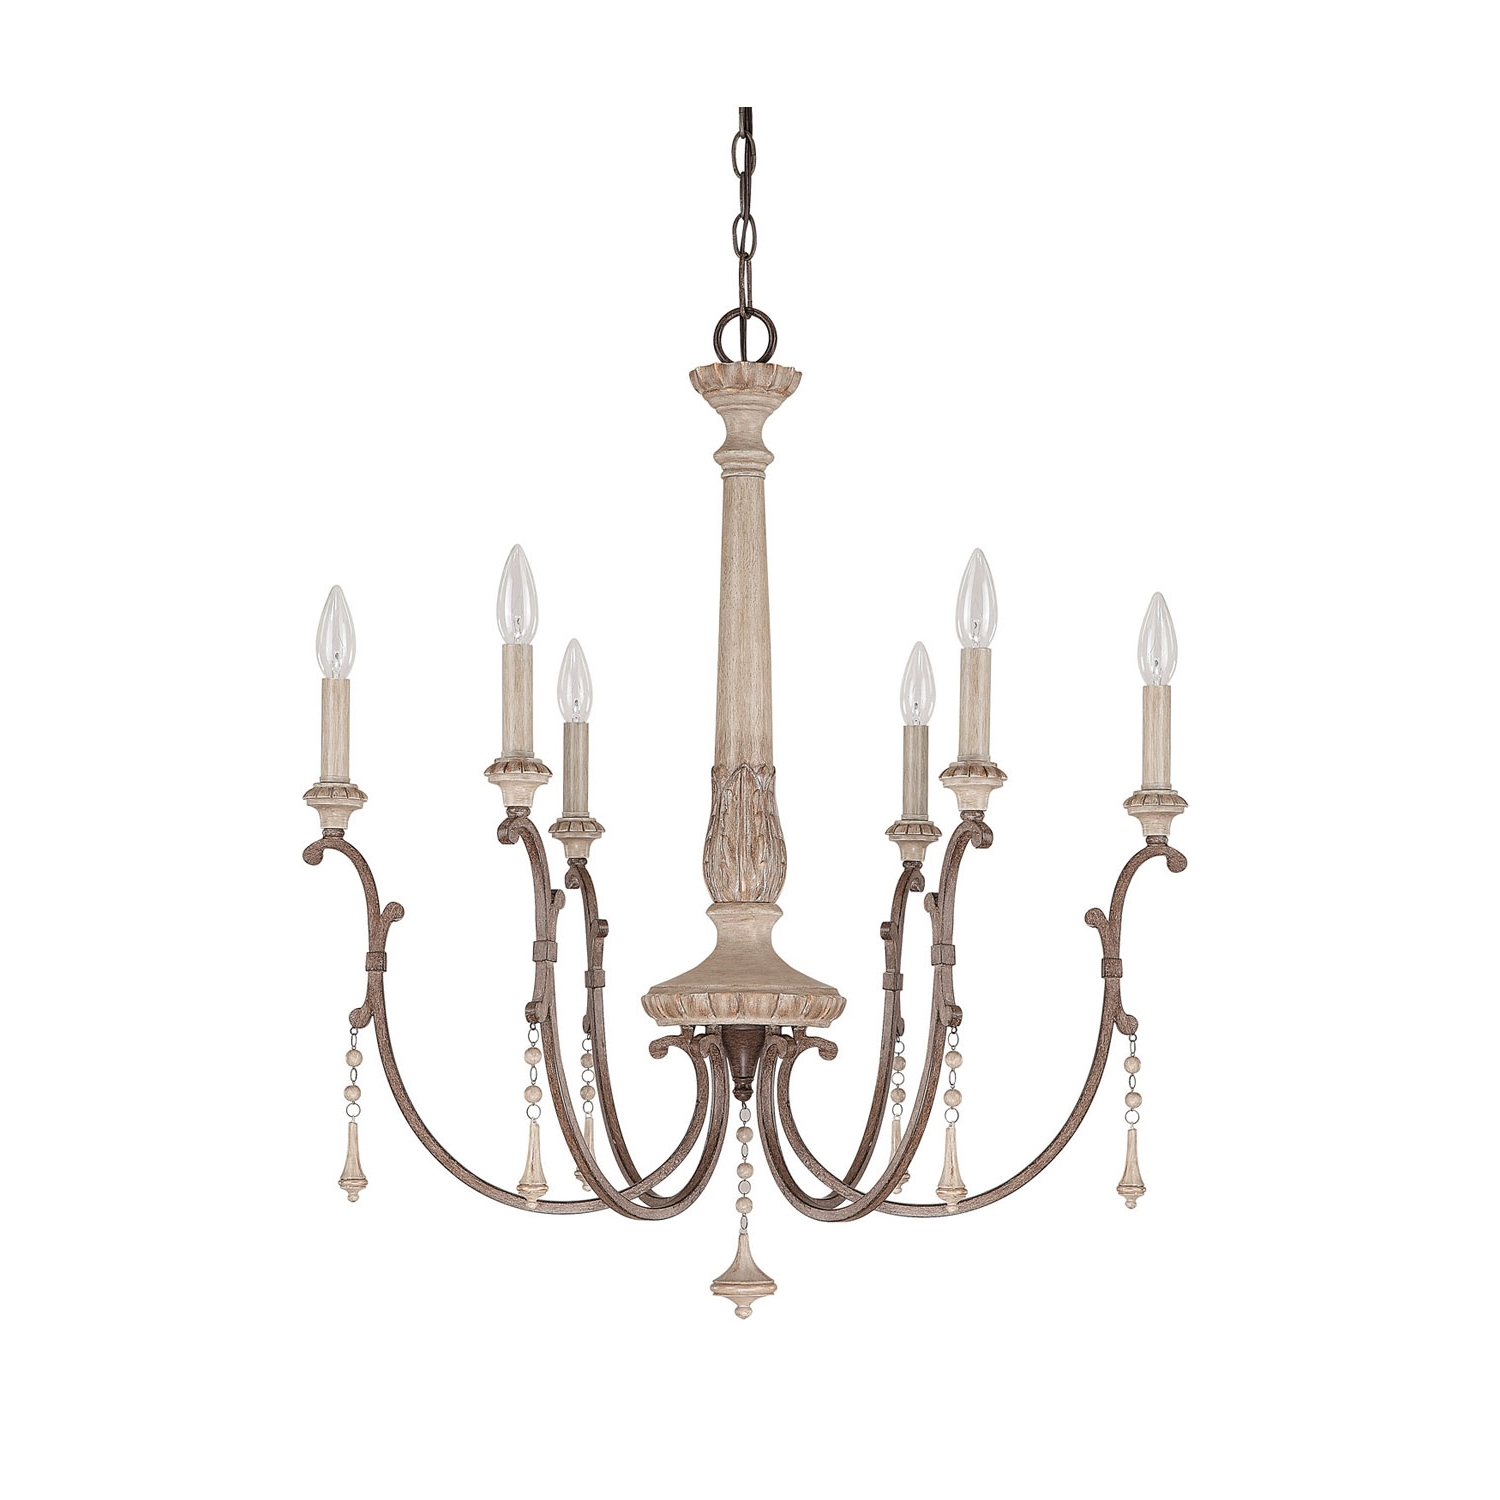 Fashionable Capital Lighting Fixture Company Chateau French Oak Six Light Regarding French Style Chandeliers (View 6 of 20)